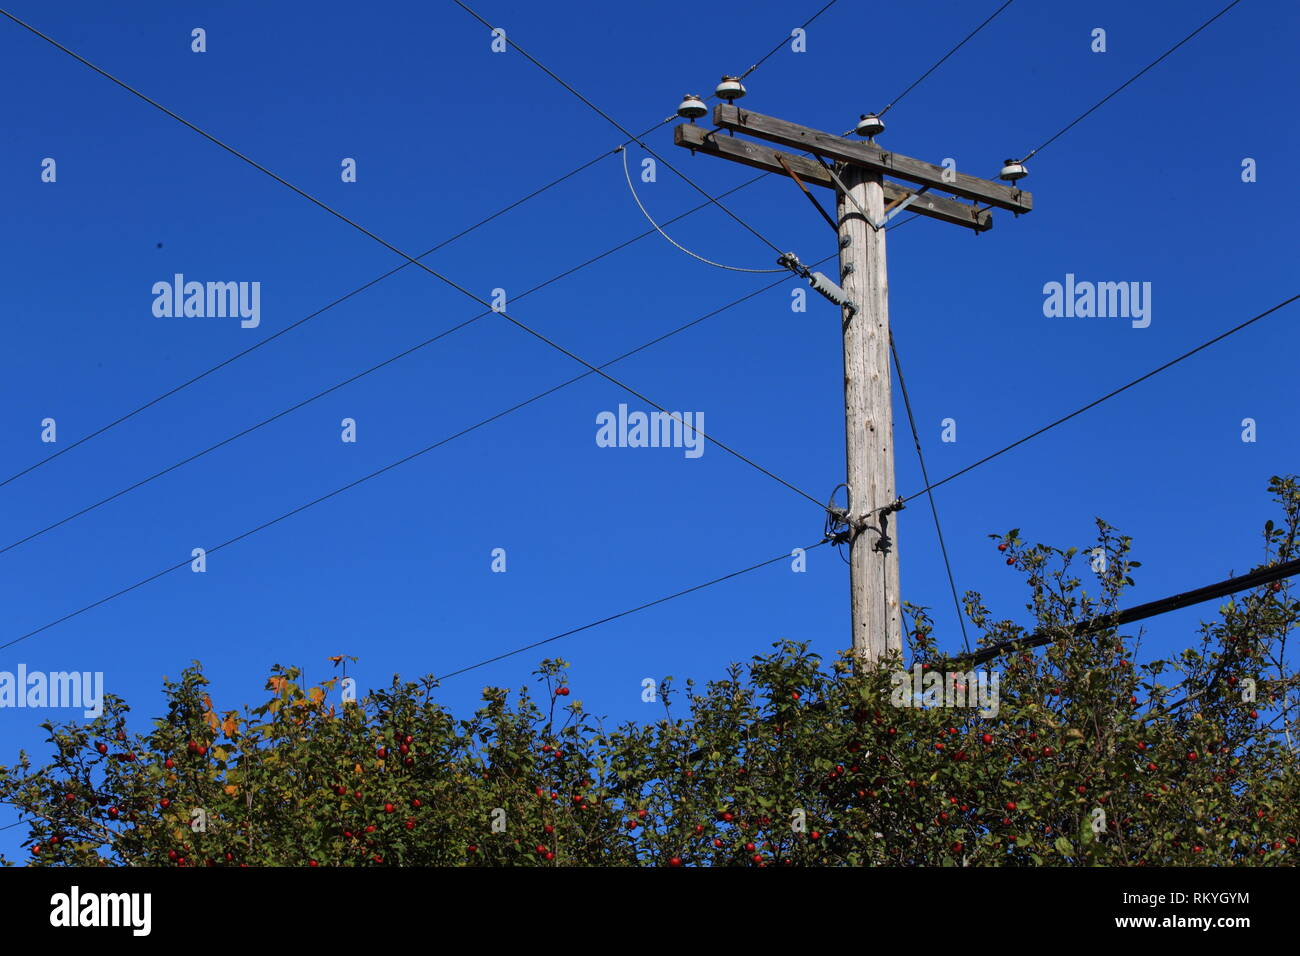 Quebec,Canada. A rural utility pole with power lines - Stock Image